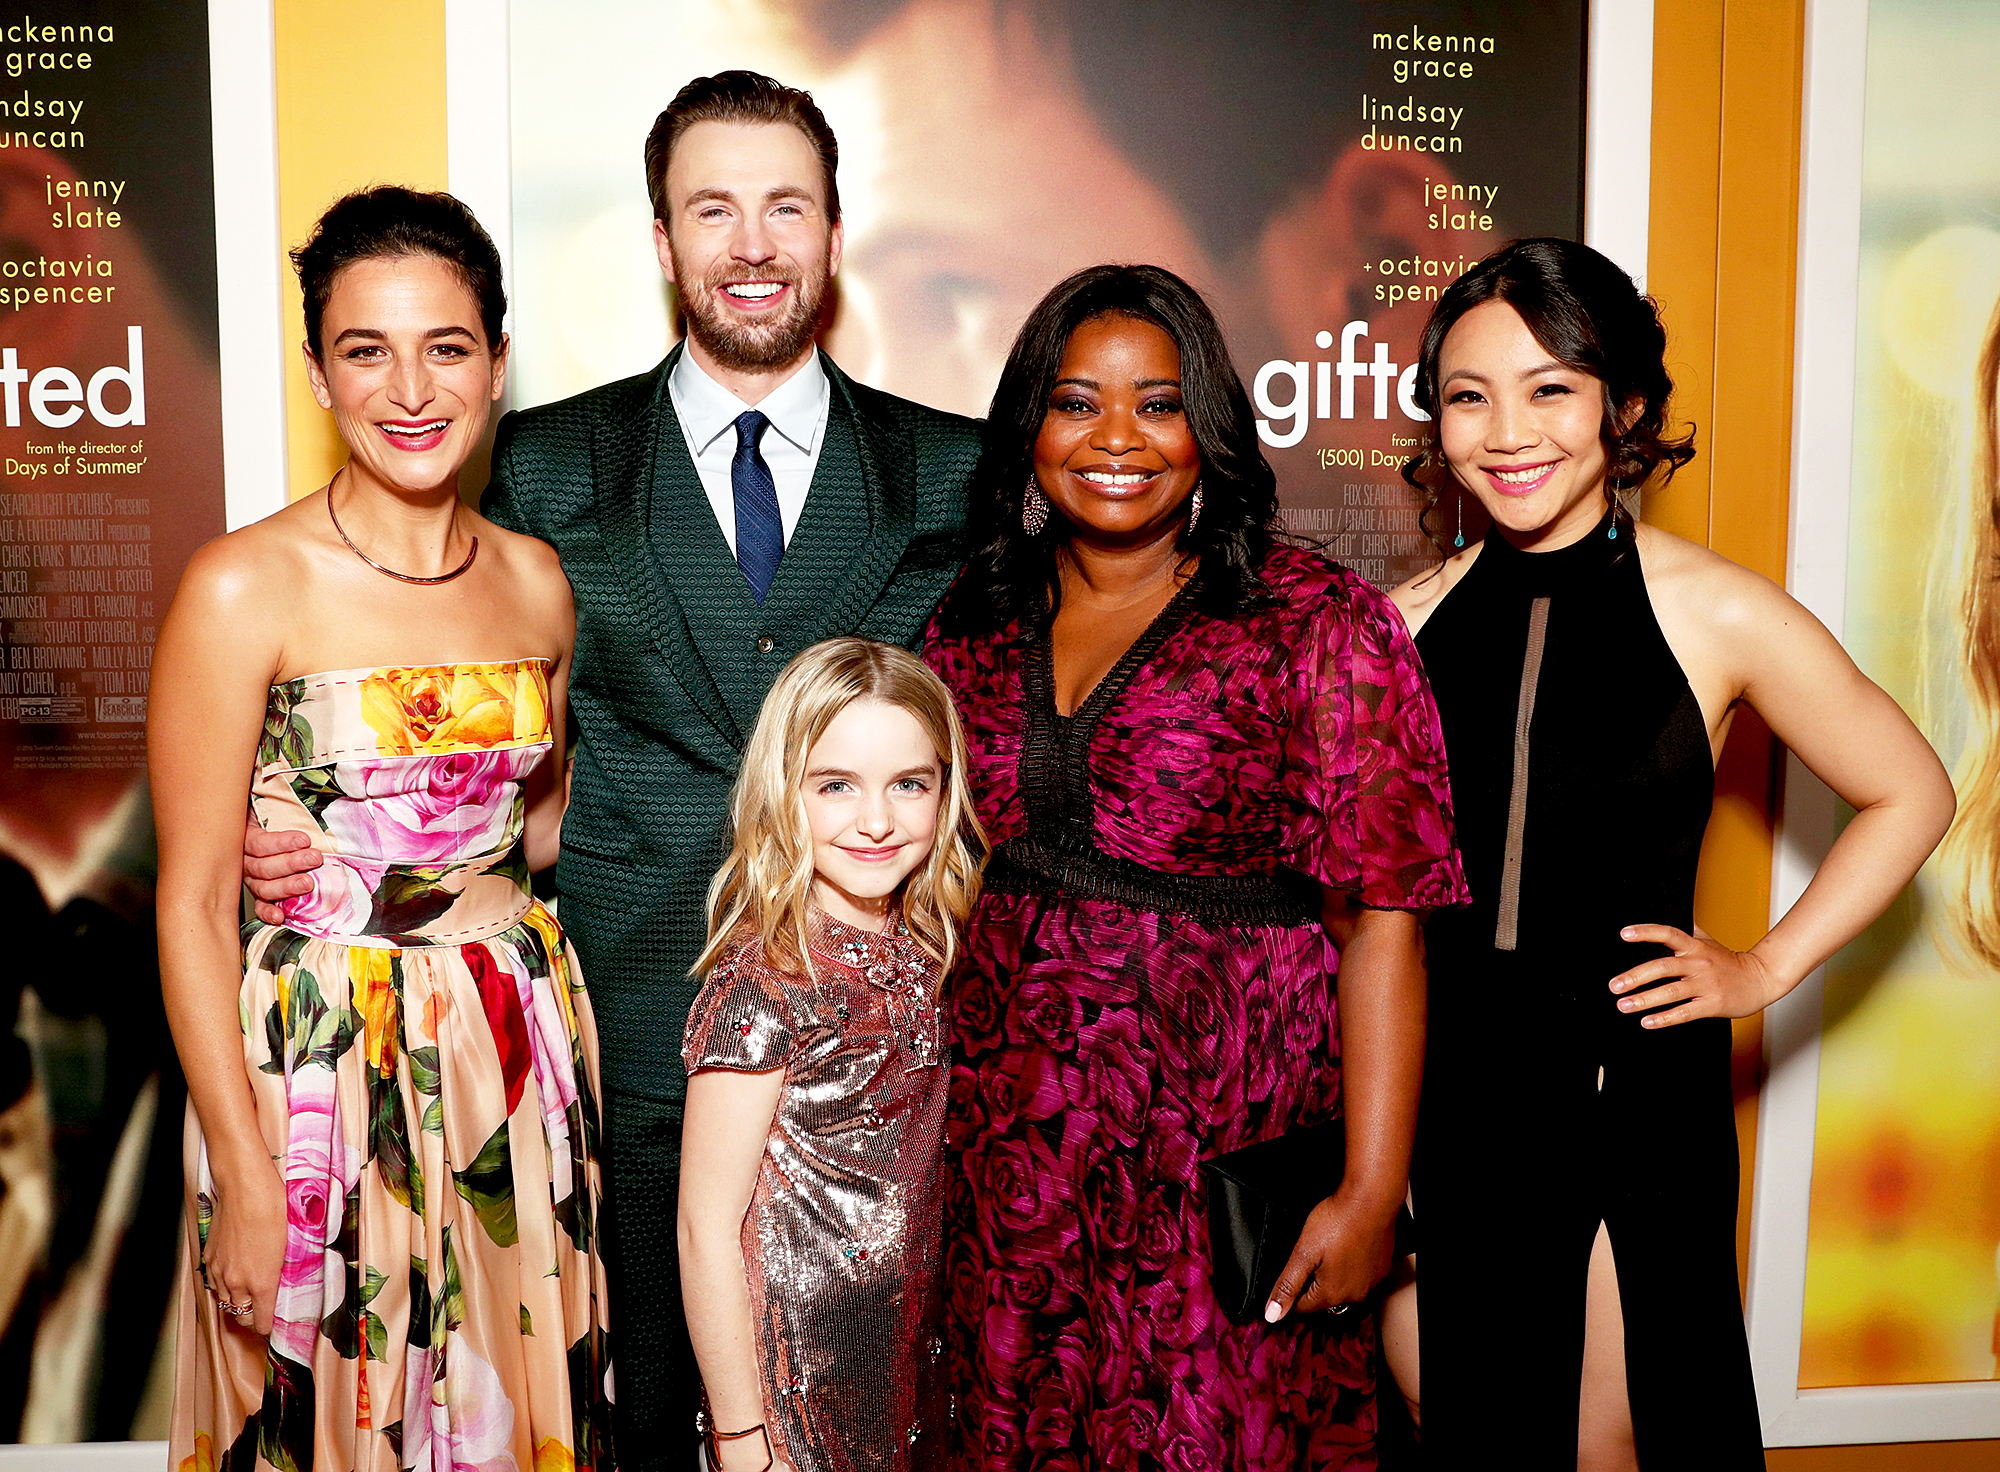 Jenny Slate, Chris Evans, Mckenna Grace, Octavia Spencer, and Jona Xiao